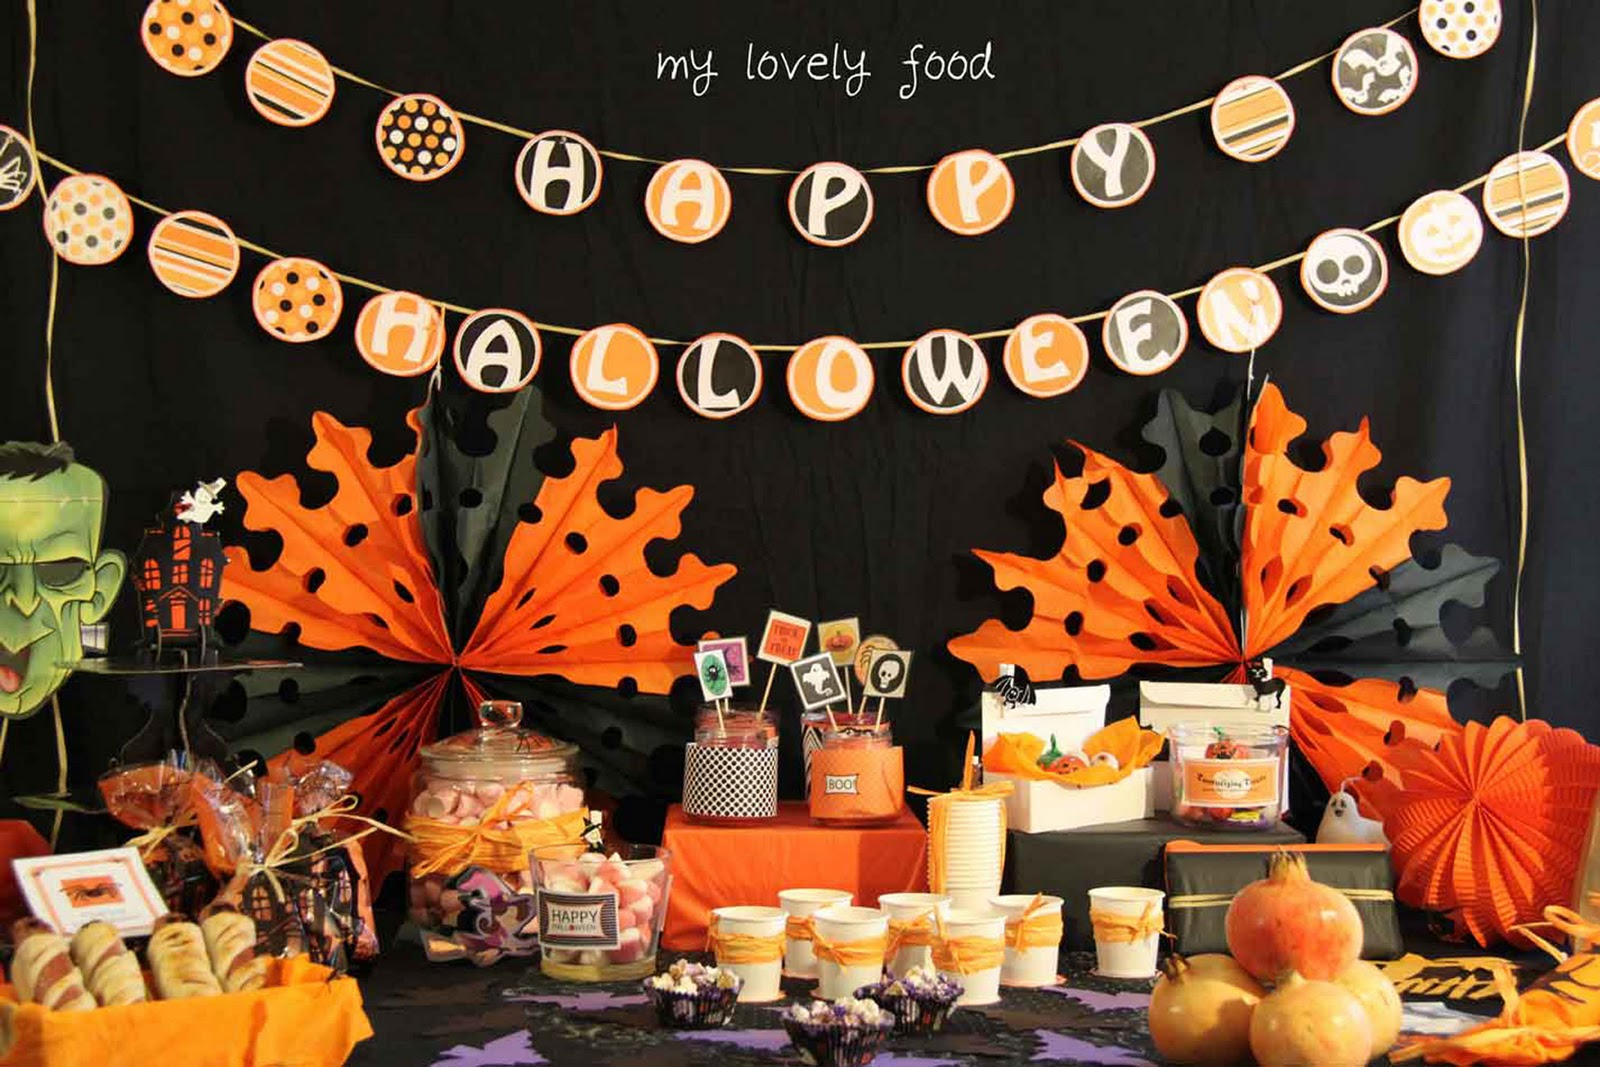 My lovely food halloween i - Decoracion de halloween para fiestas ...